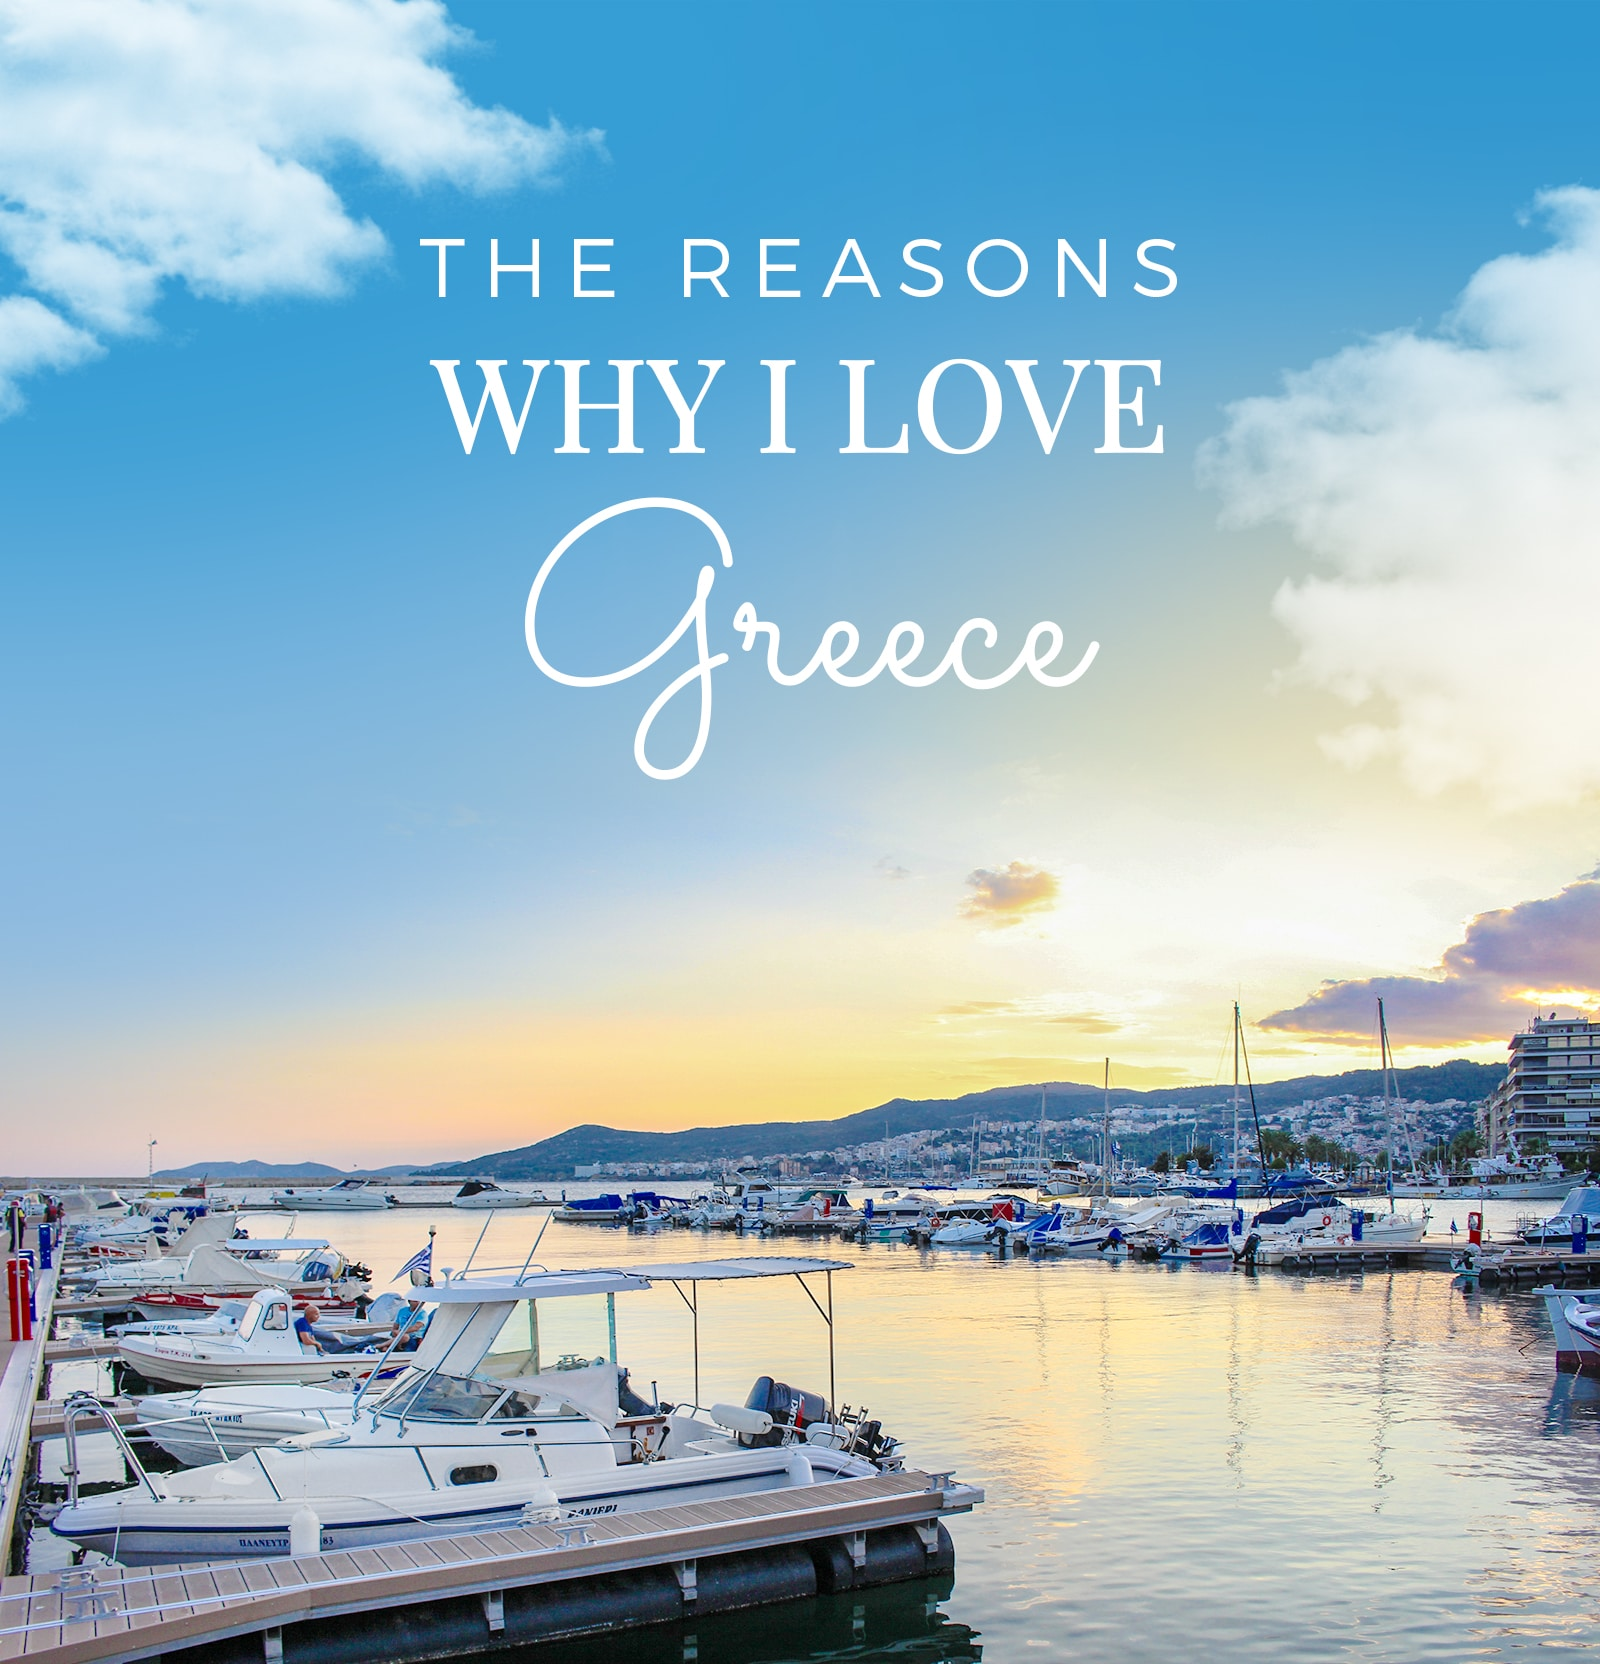 The reasons why I love Greece